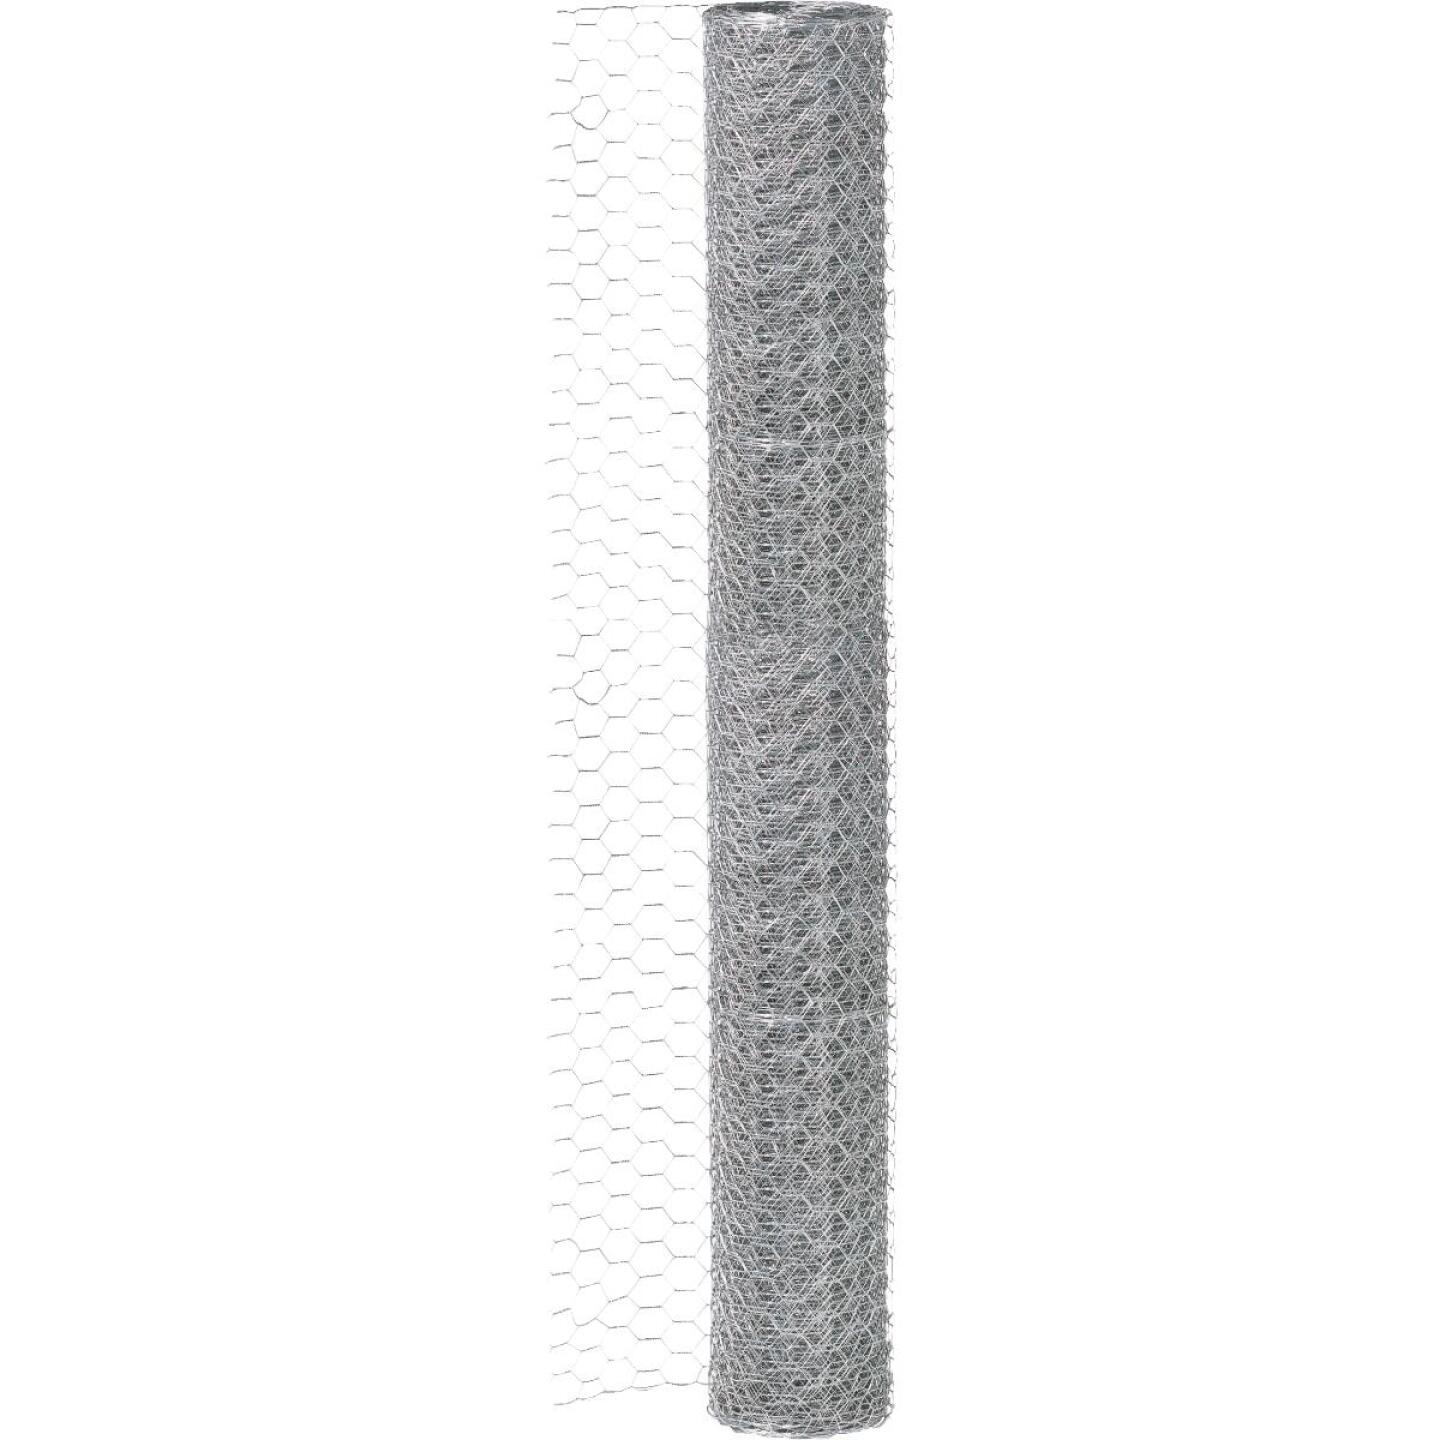 1/2 In. x 24 In. H. x 10 Ft. L. Hexagonal Wire Poultry Netting Image 2